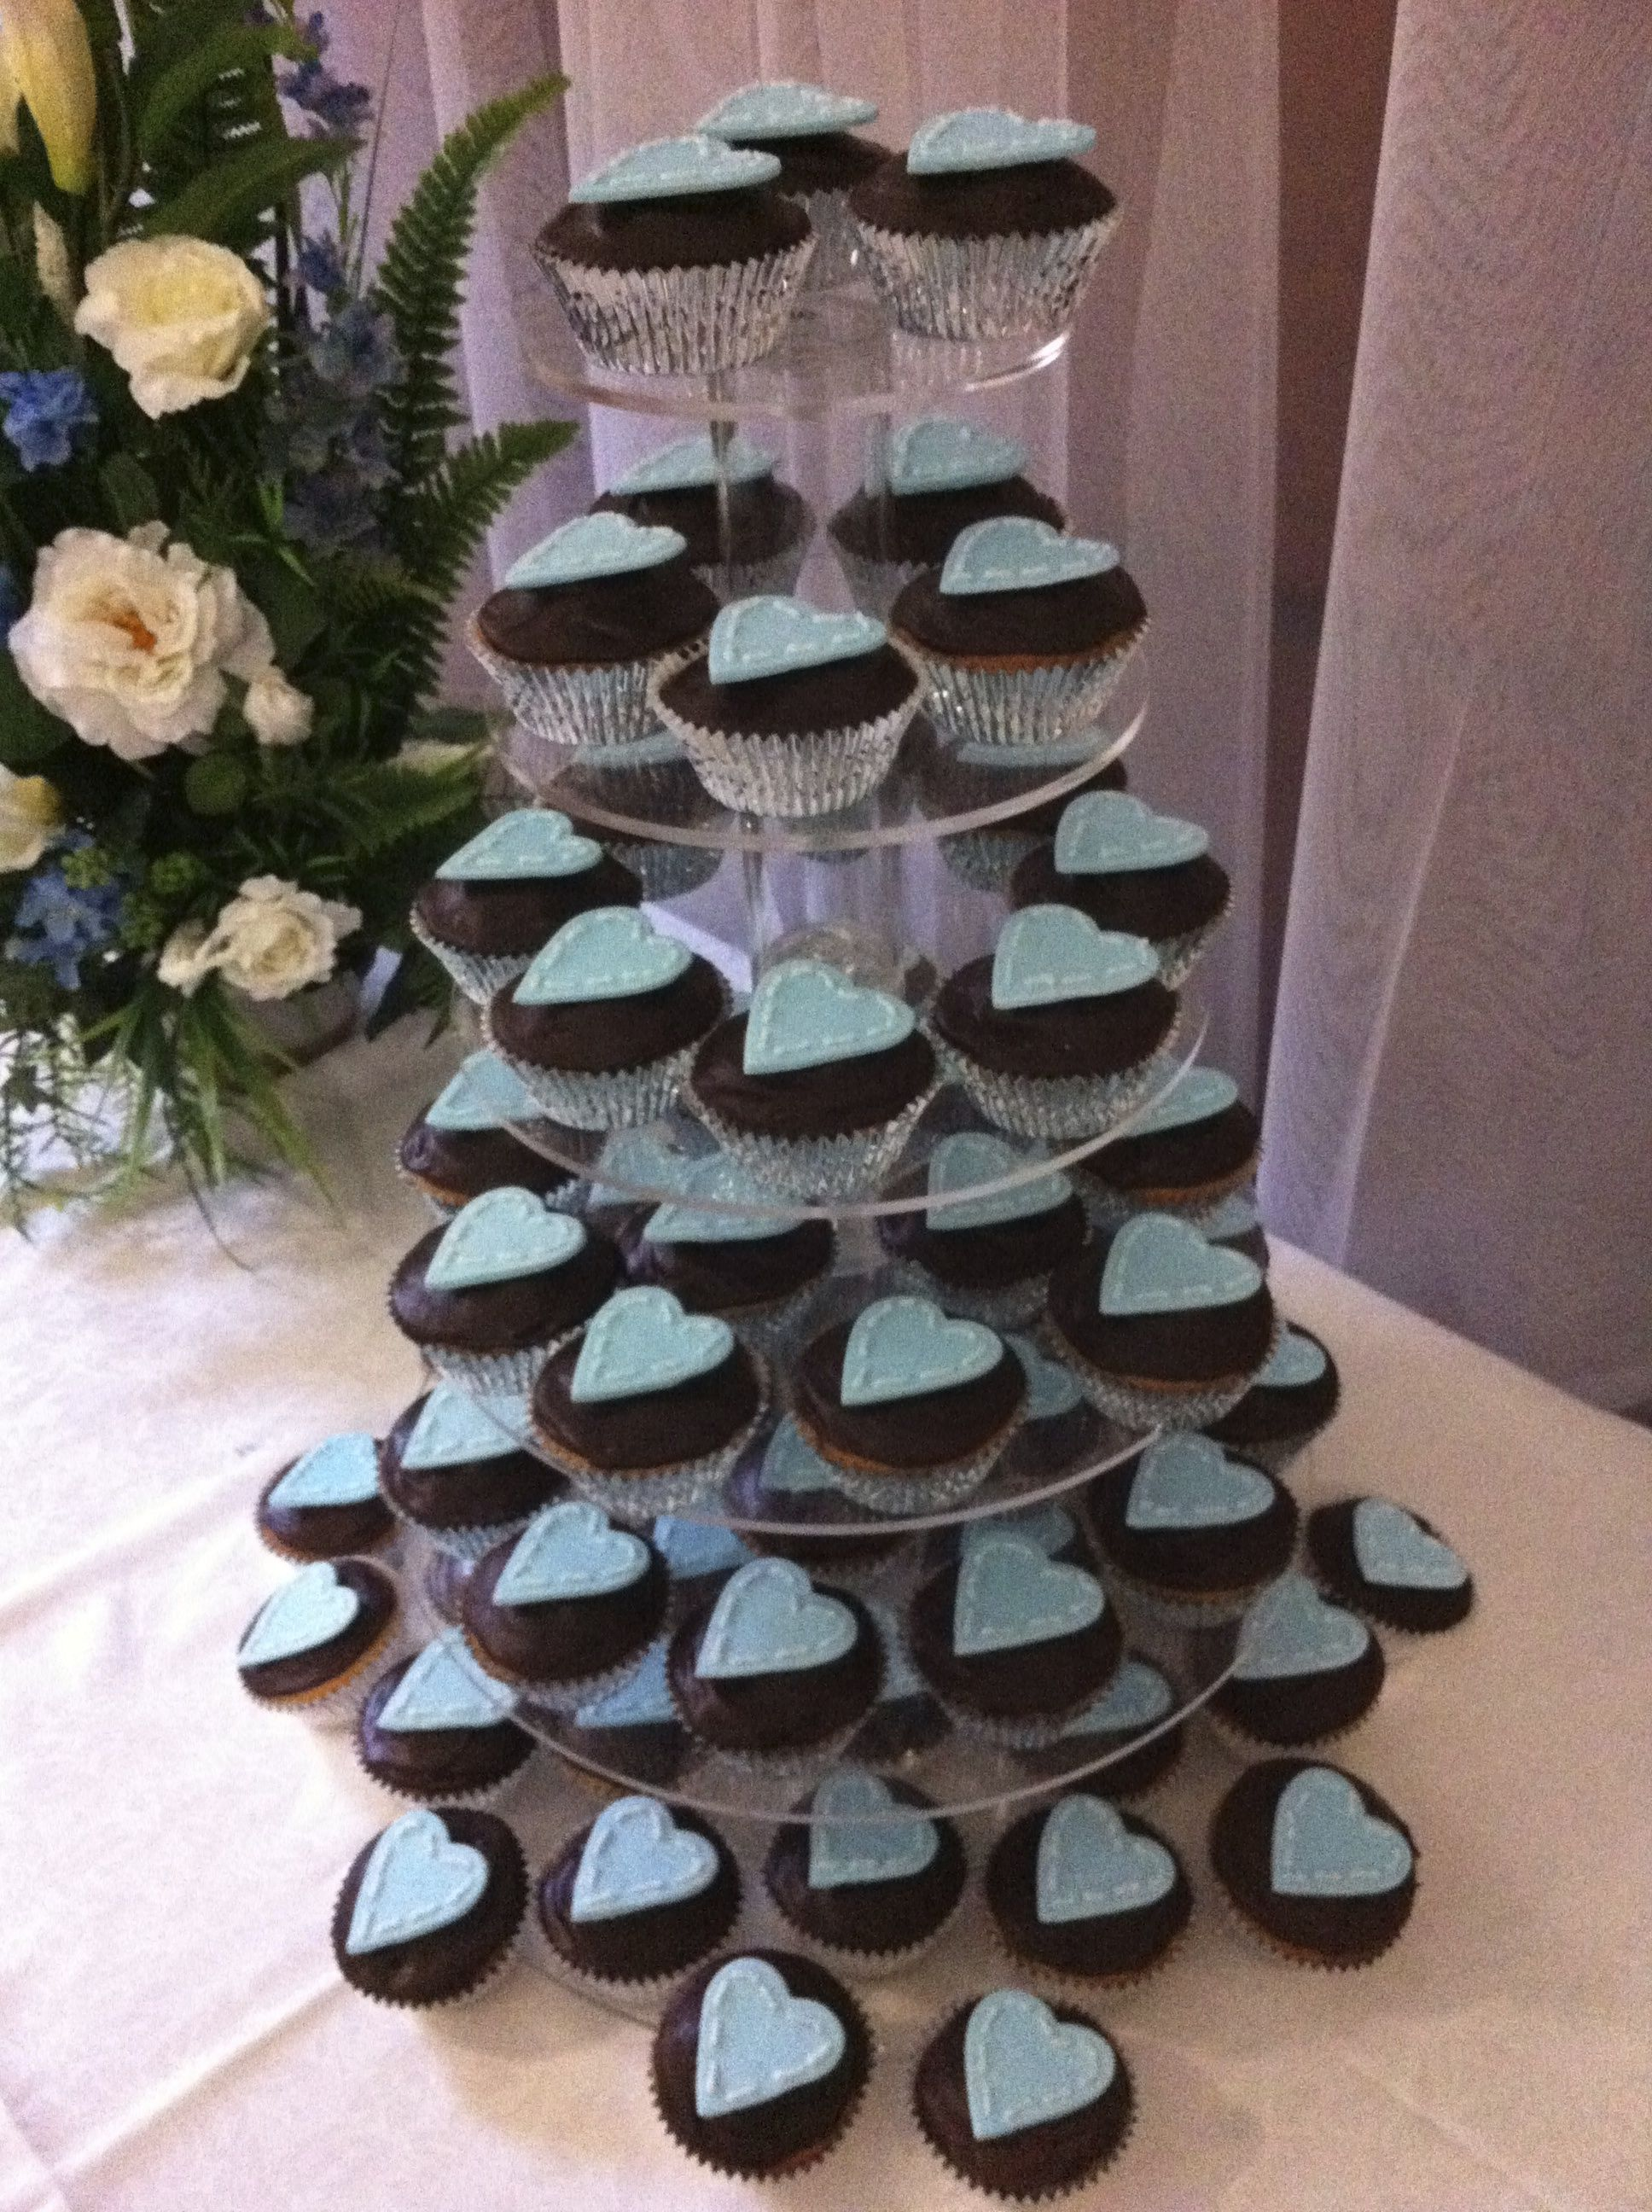 Wedding cupcakes Chocolate cupcakes with dark chocolate ganache Blue hearts with piped royal icing to create stitched edge look